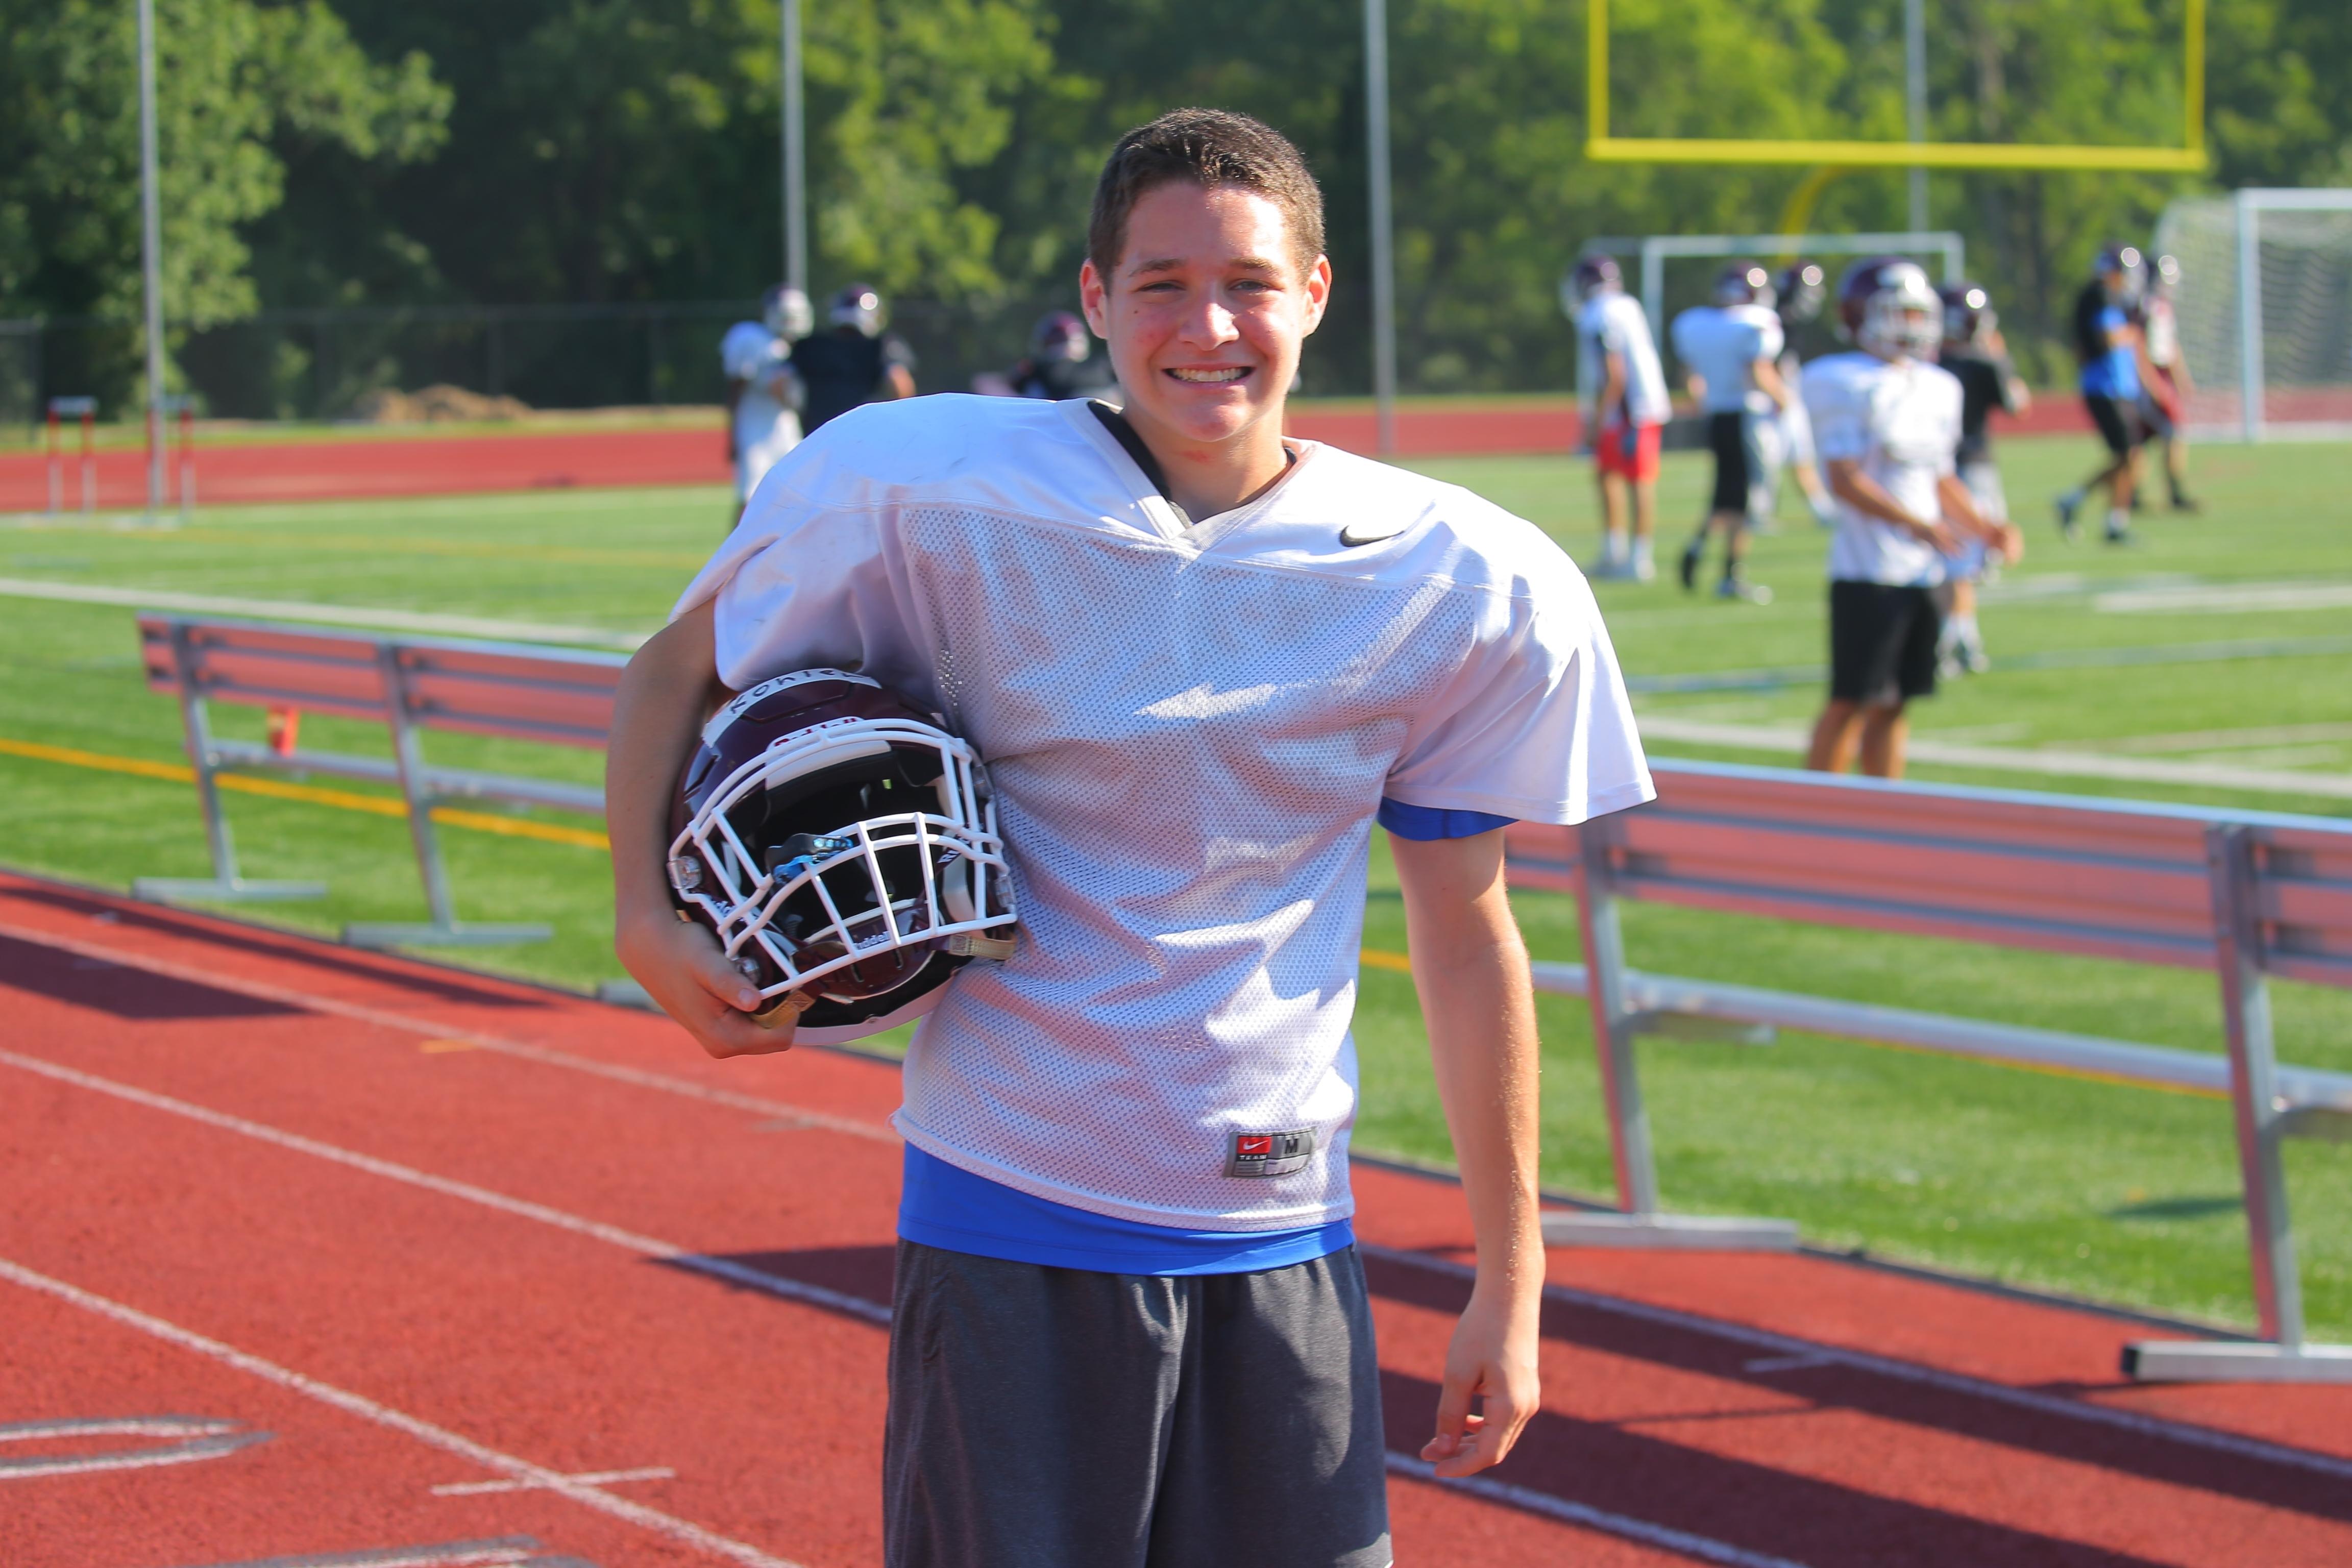 Jacob Kohler, a receiver, is seen before practice at Orchard Park High School Athletic Field. He got the good news Thursday.